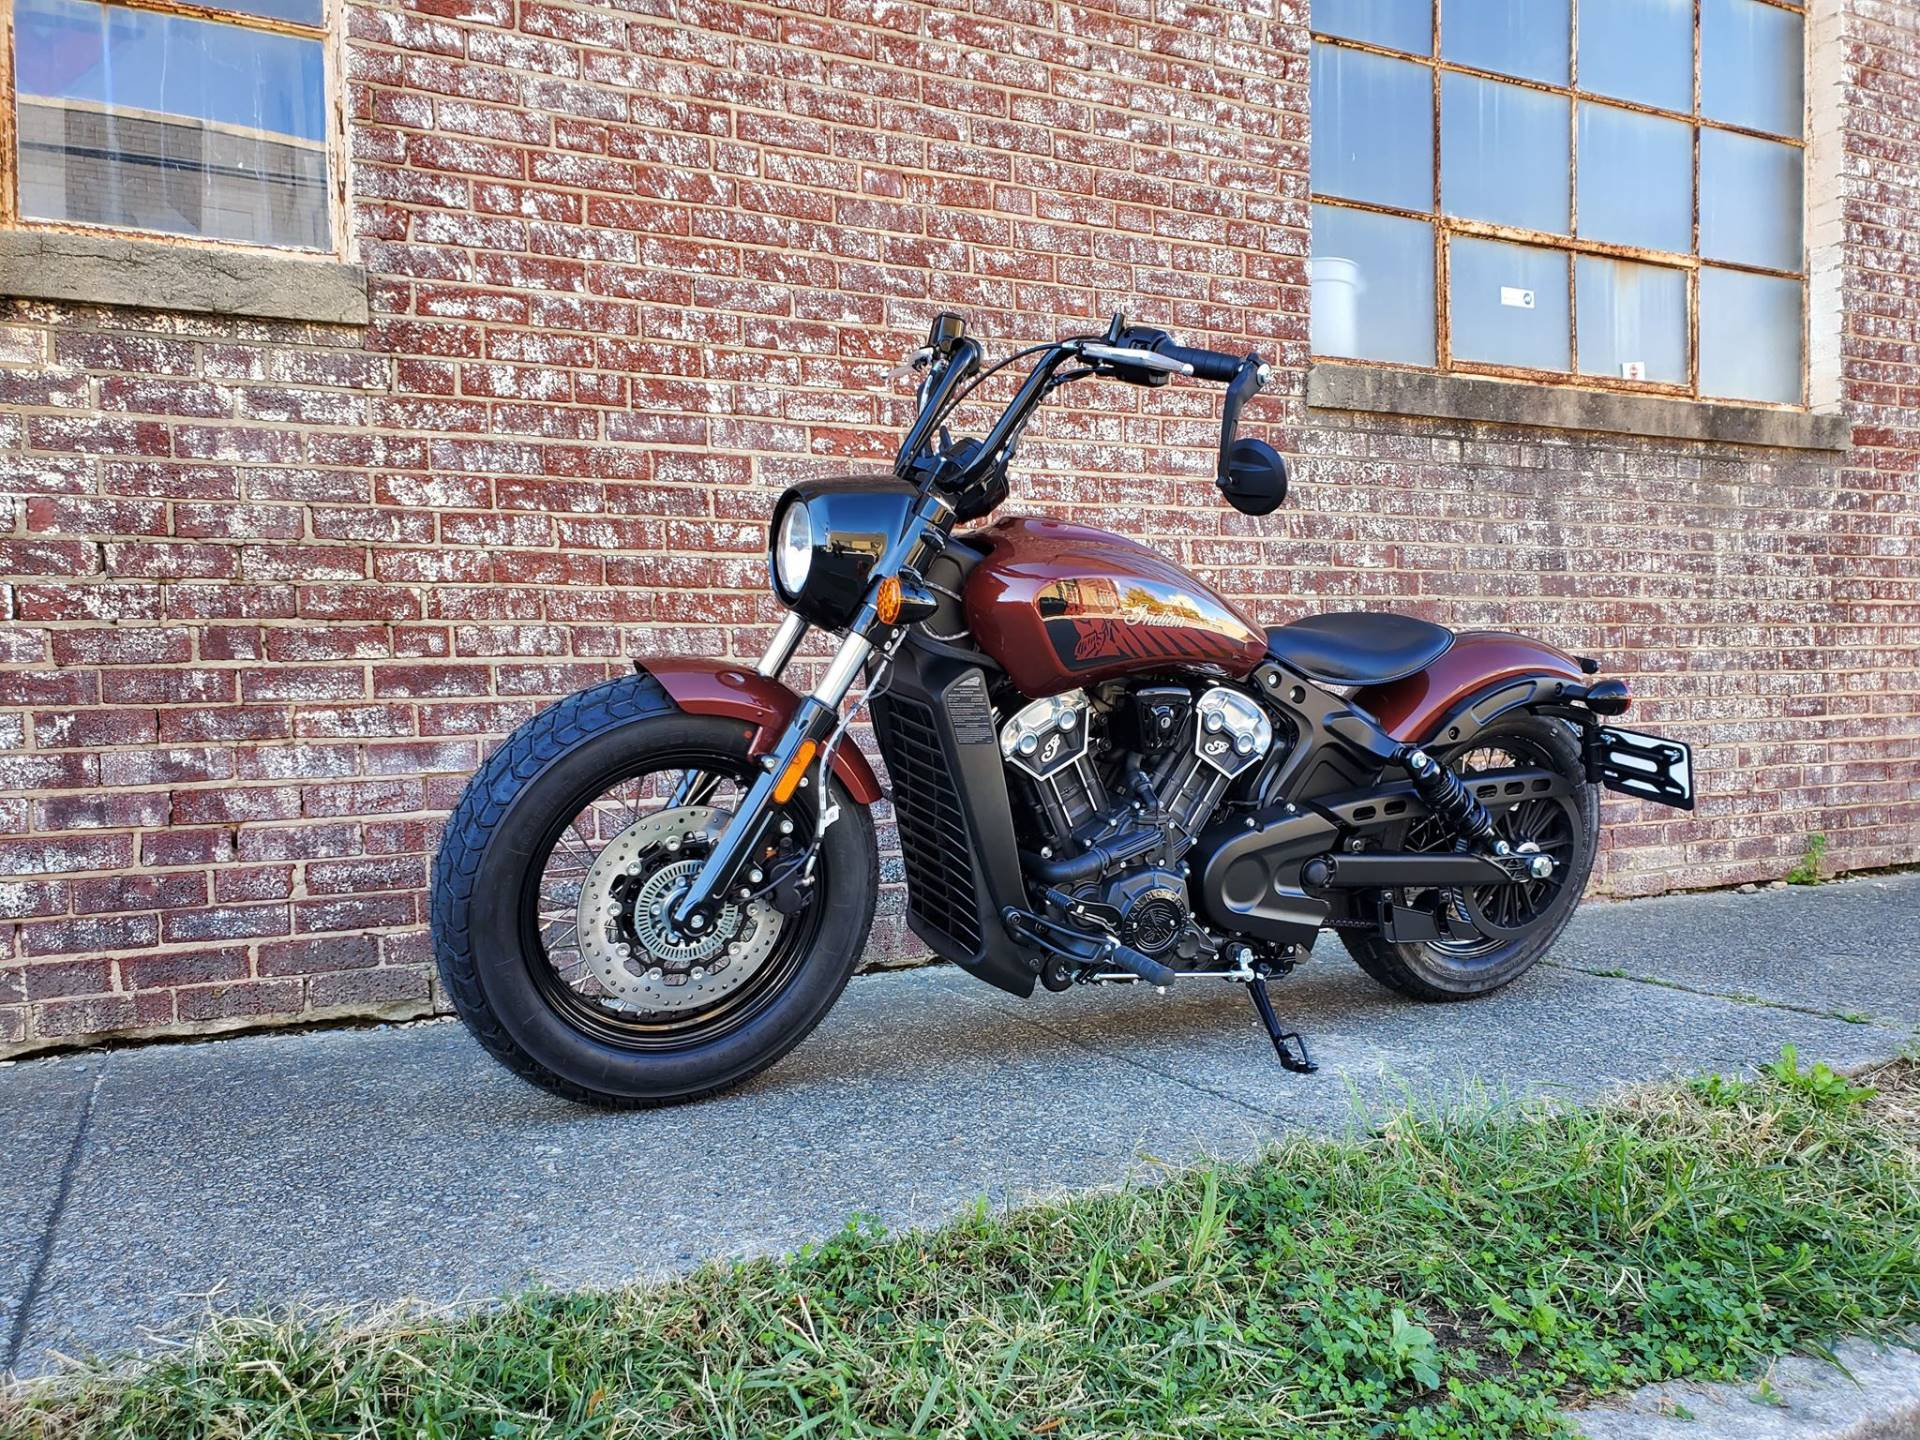 2020 Indian Scout® Bobber Twenty ABS in Greensboro, North Carolina - Photo 5